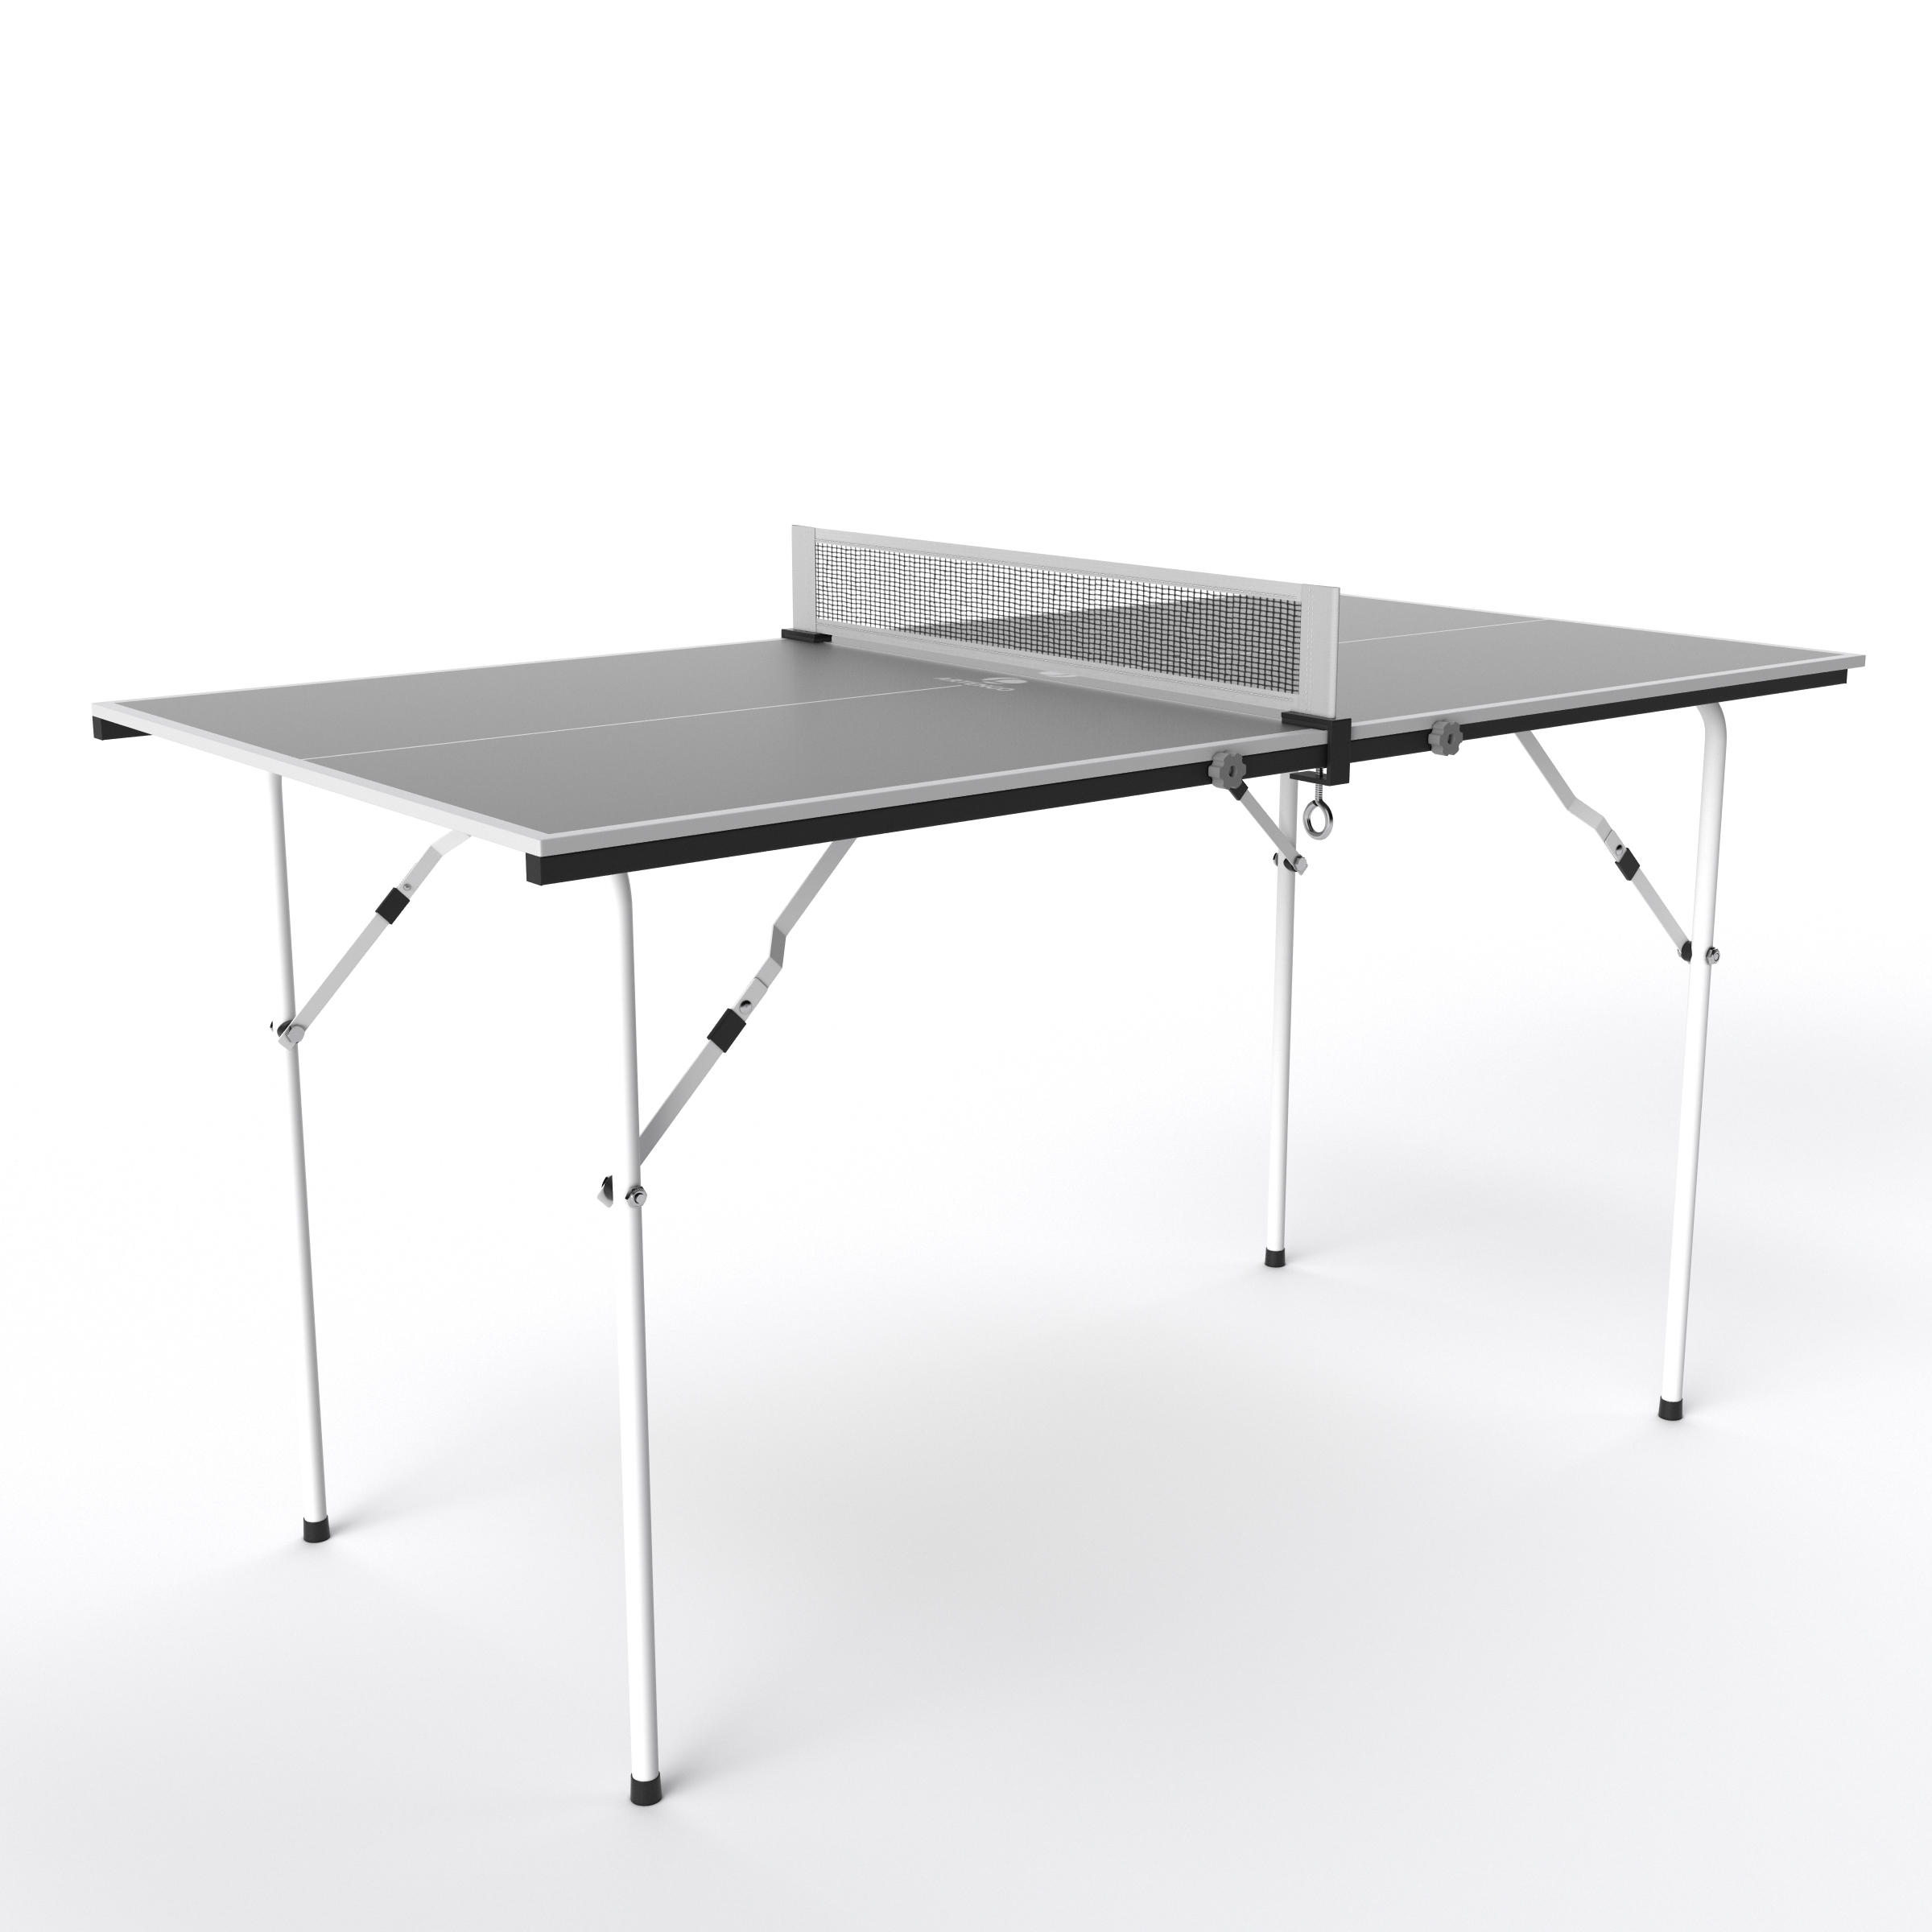 PPT 500 Small Free Indoor Table Tennis Table